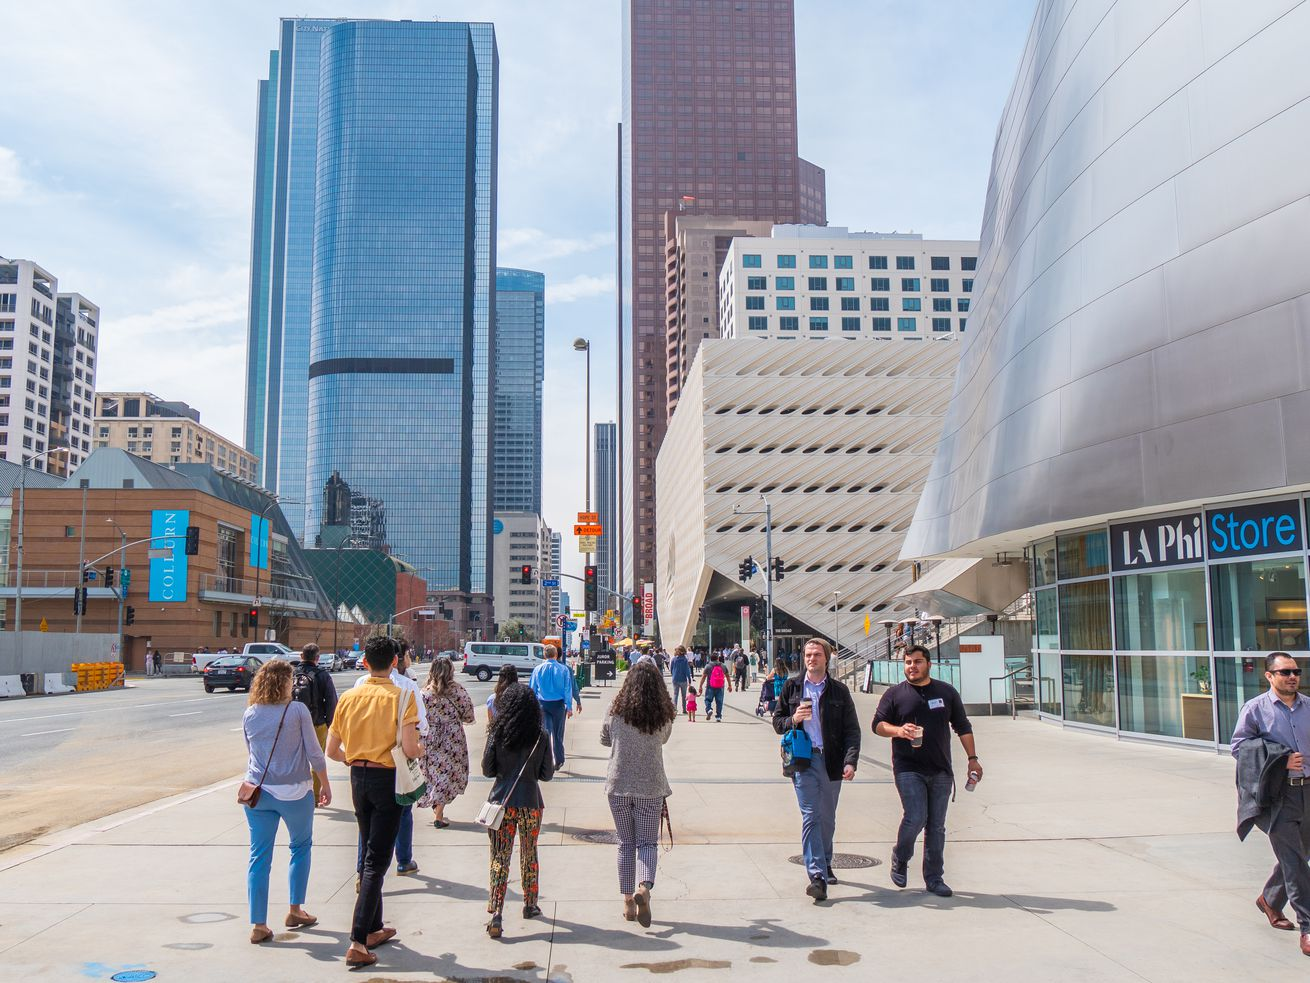 People walk on a sidewalk in Downtown LA. The Broad is in the background, along with the Museum of Contemporary Art.